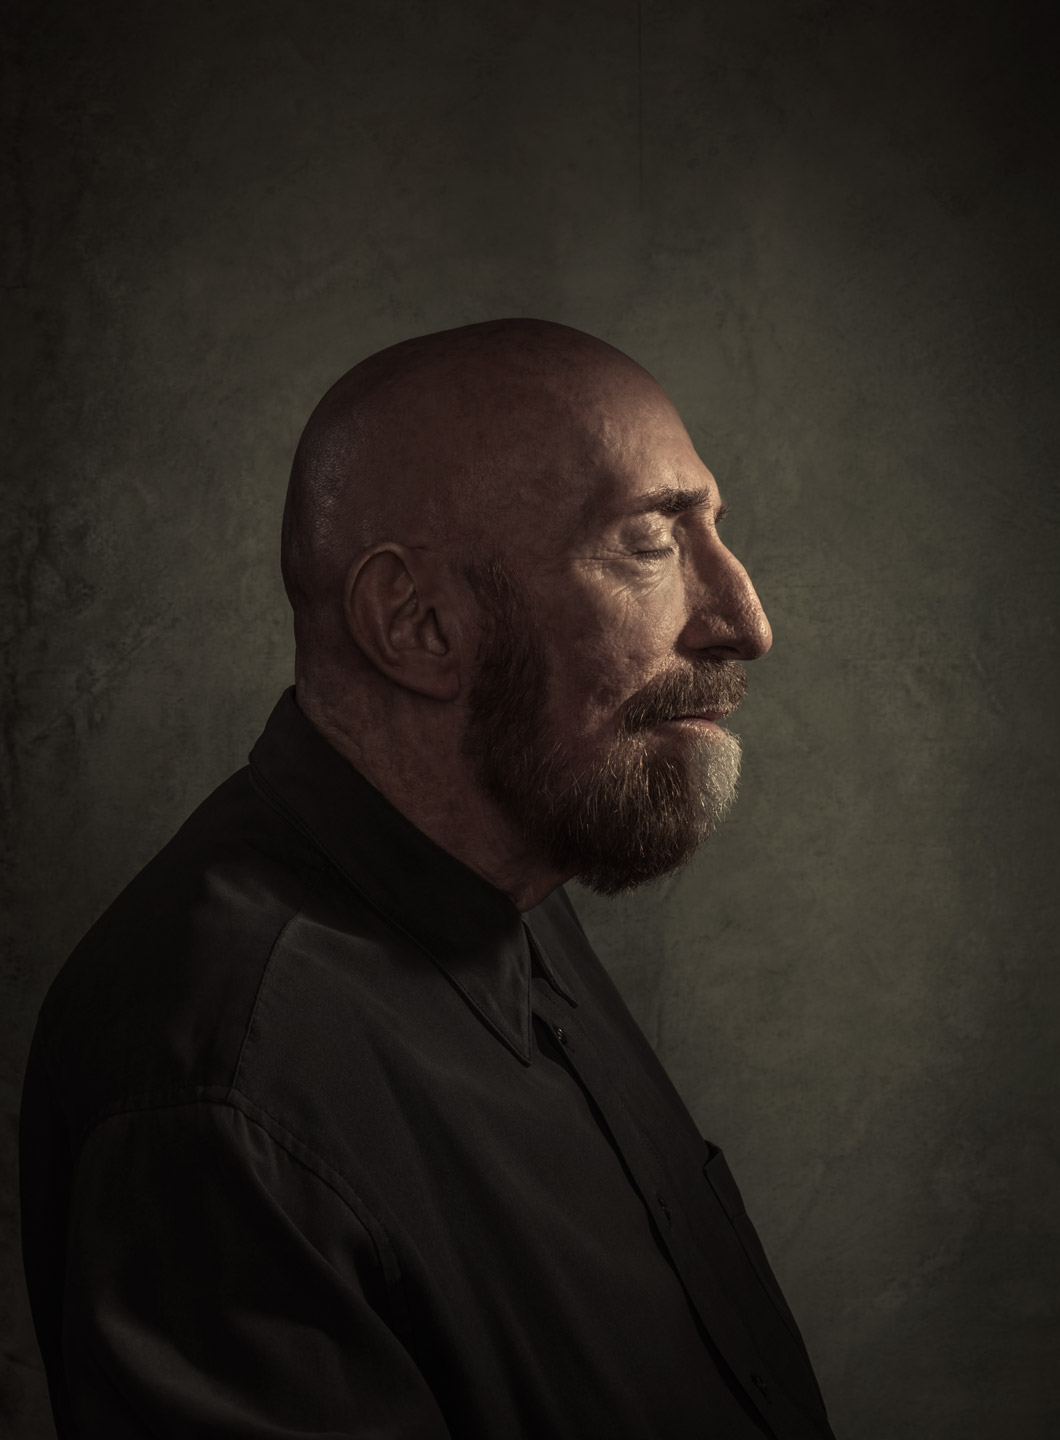 Kip Thorne - Los Angeles, CA - Wired Magazine